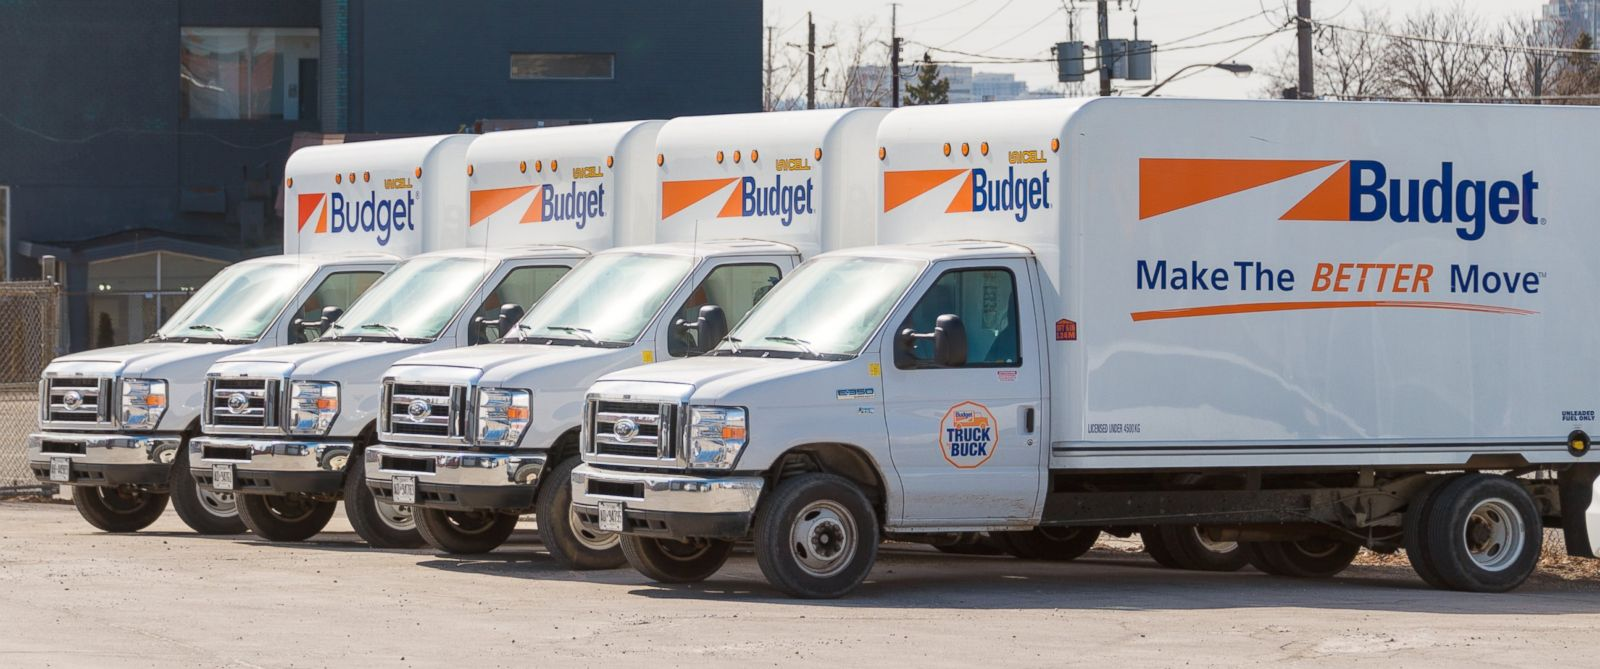 photo budget truck rental llc is the second largest truck rental company in the